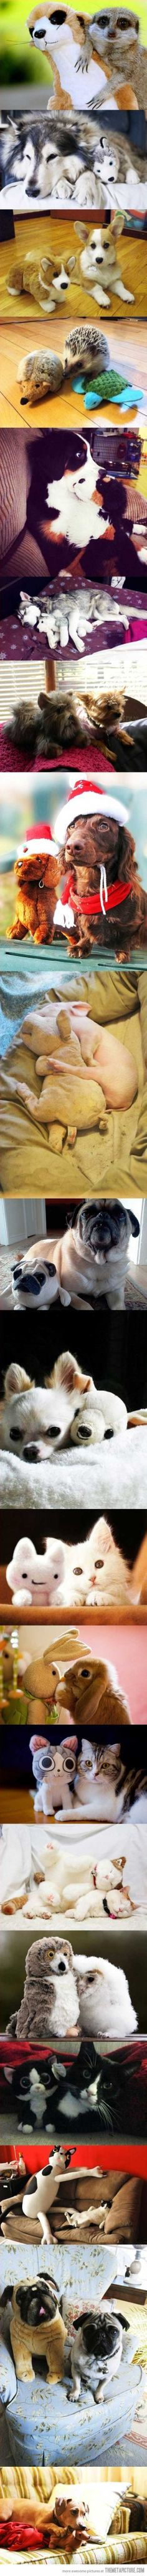 best cute funny images on pinterest cutest animals funny